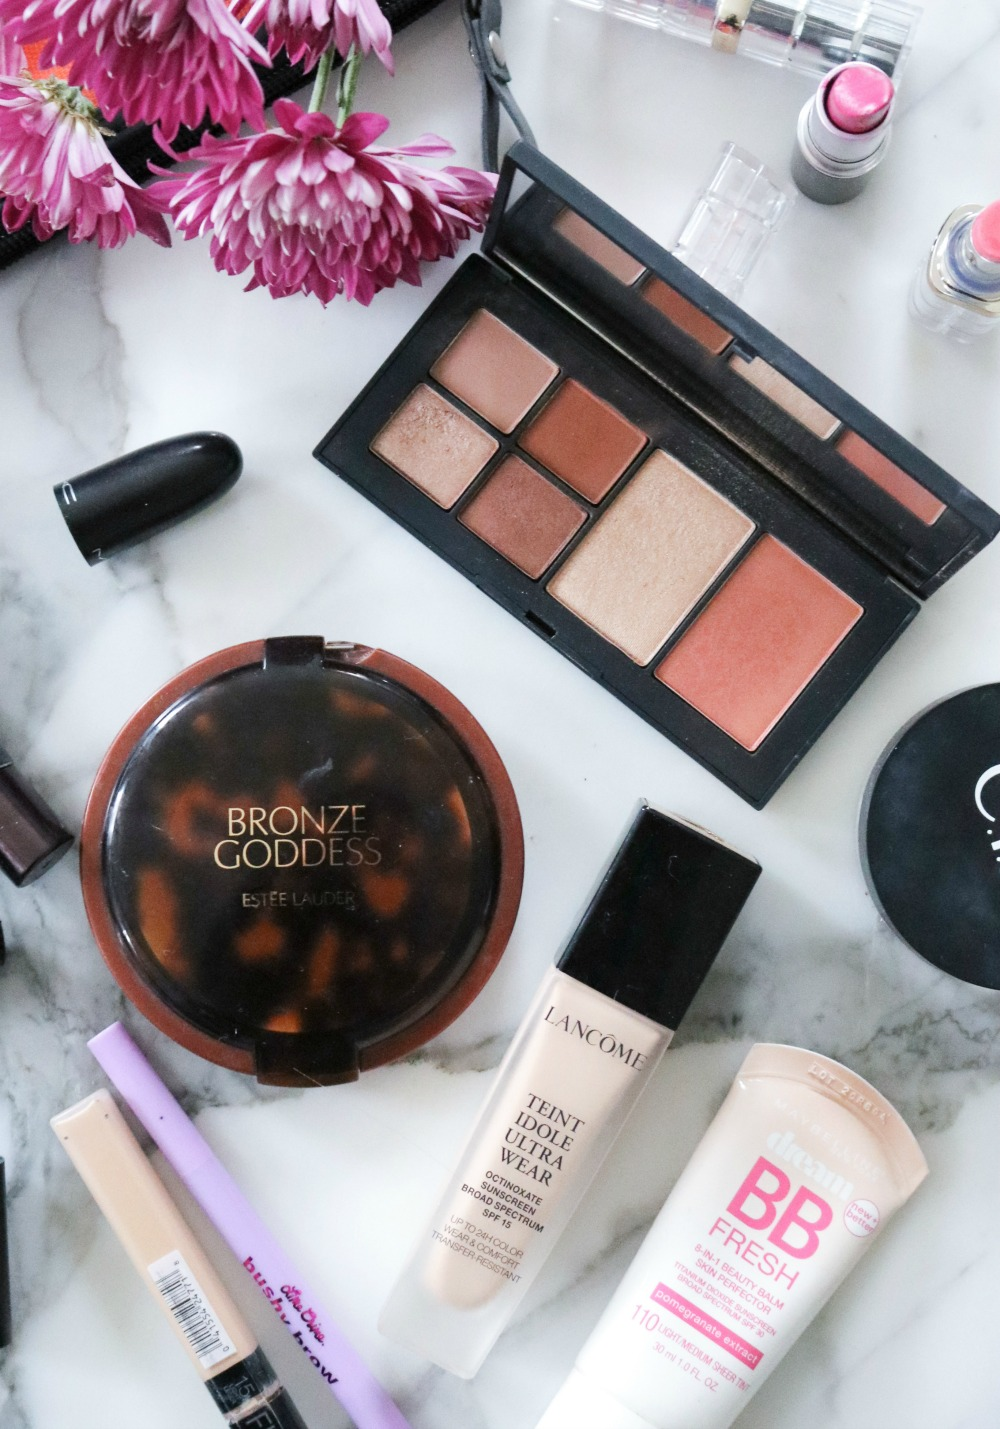 Inside My Spring Travel Makeup Bag #SpringMakeup #Makeup #TravelMakeup